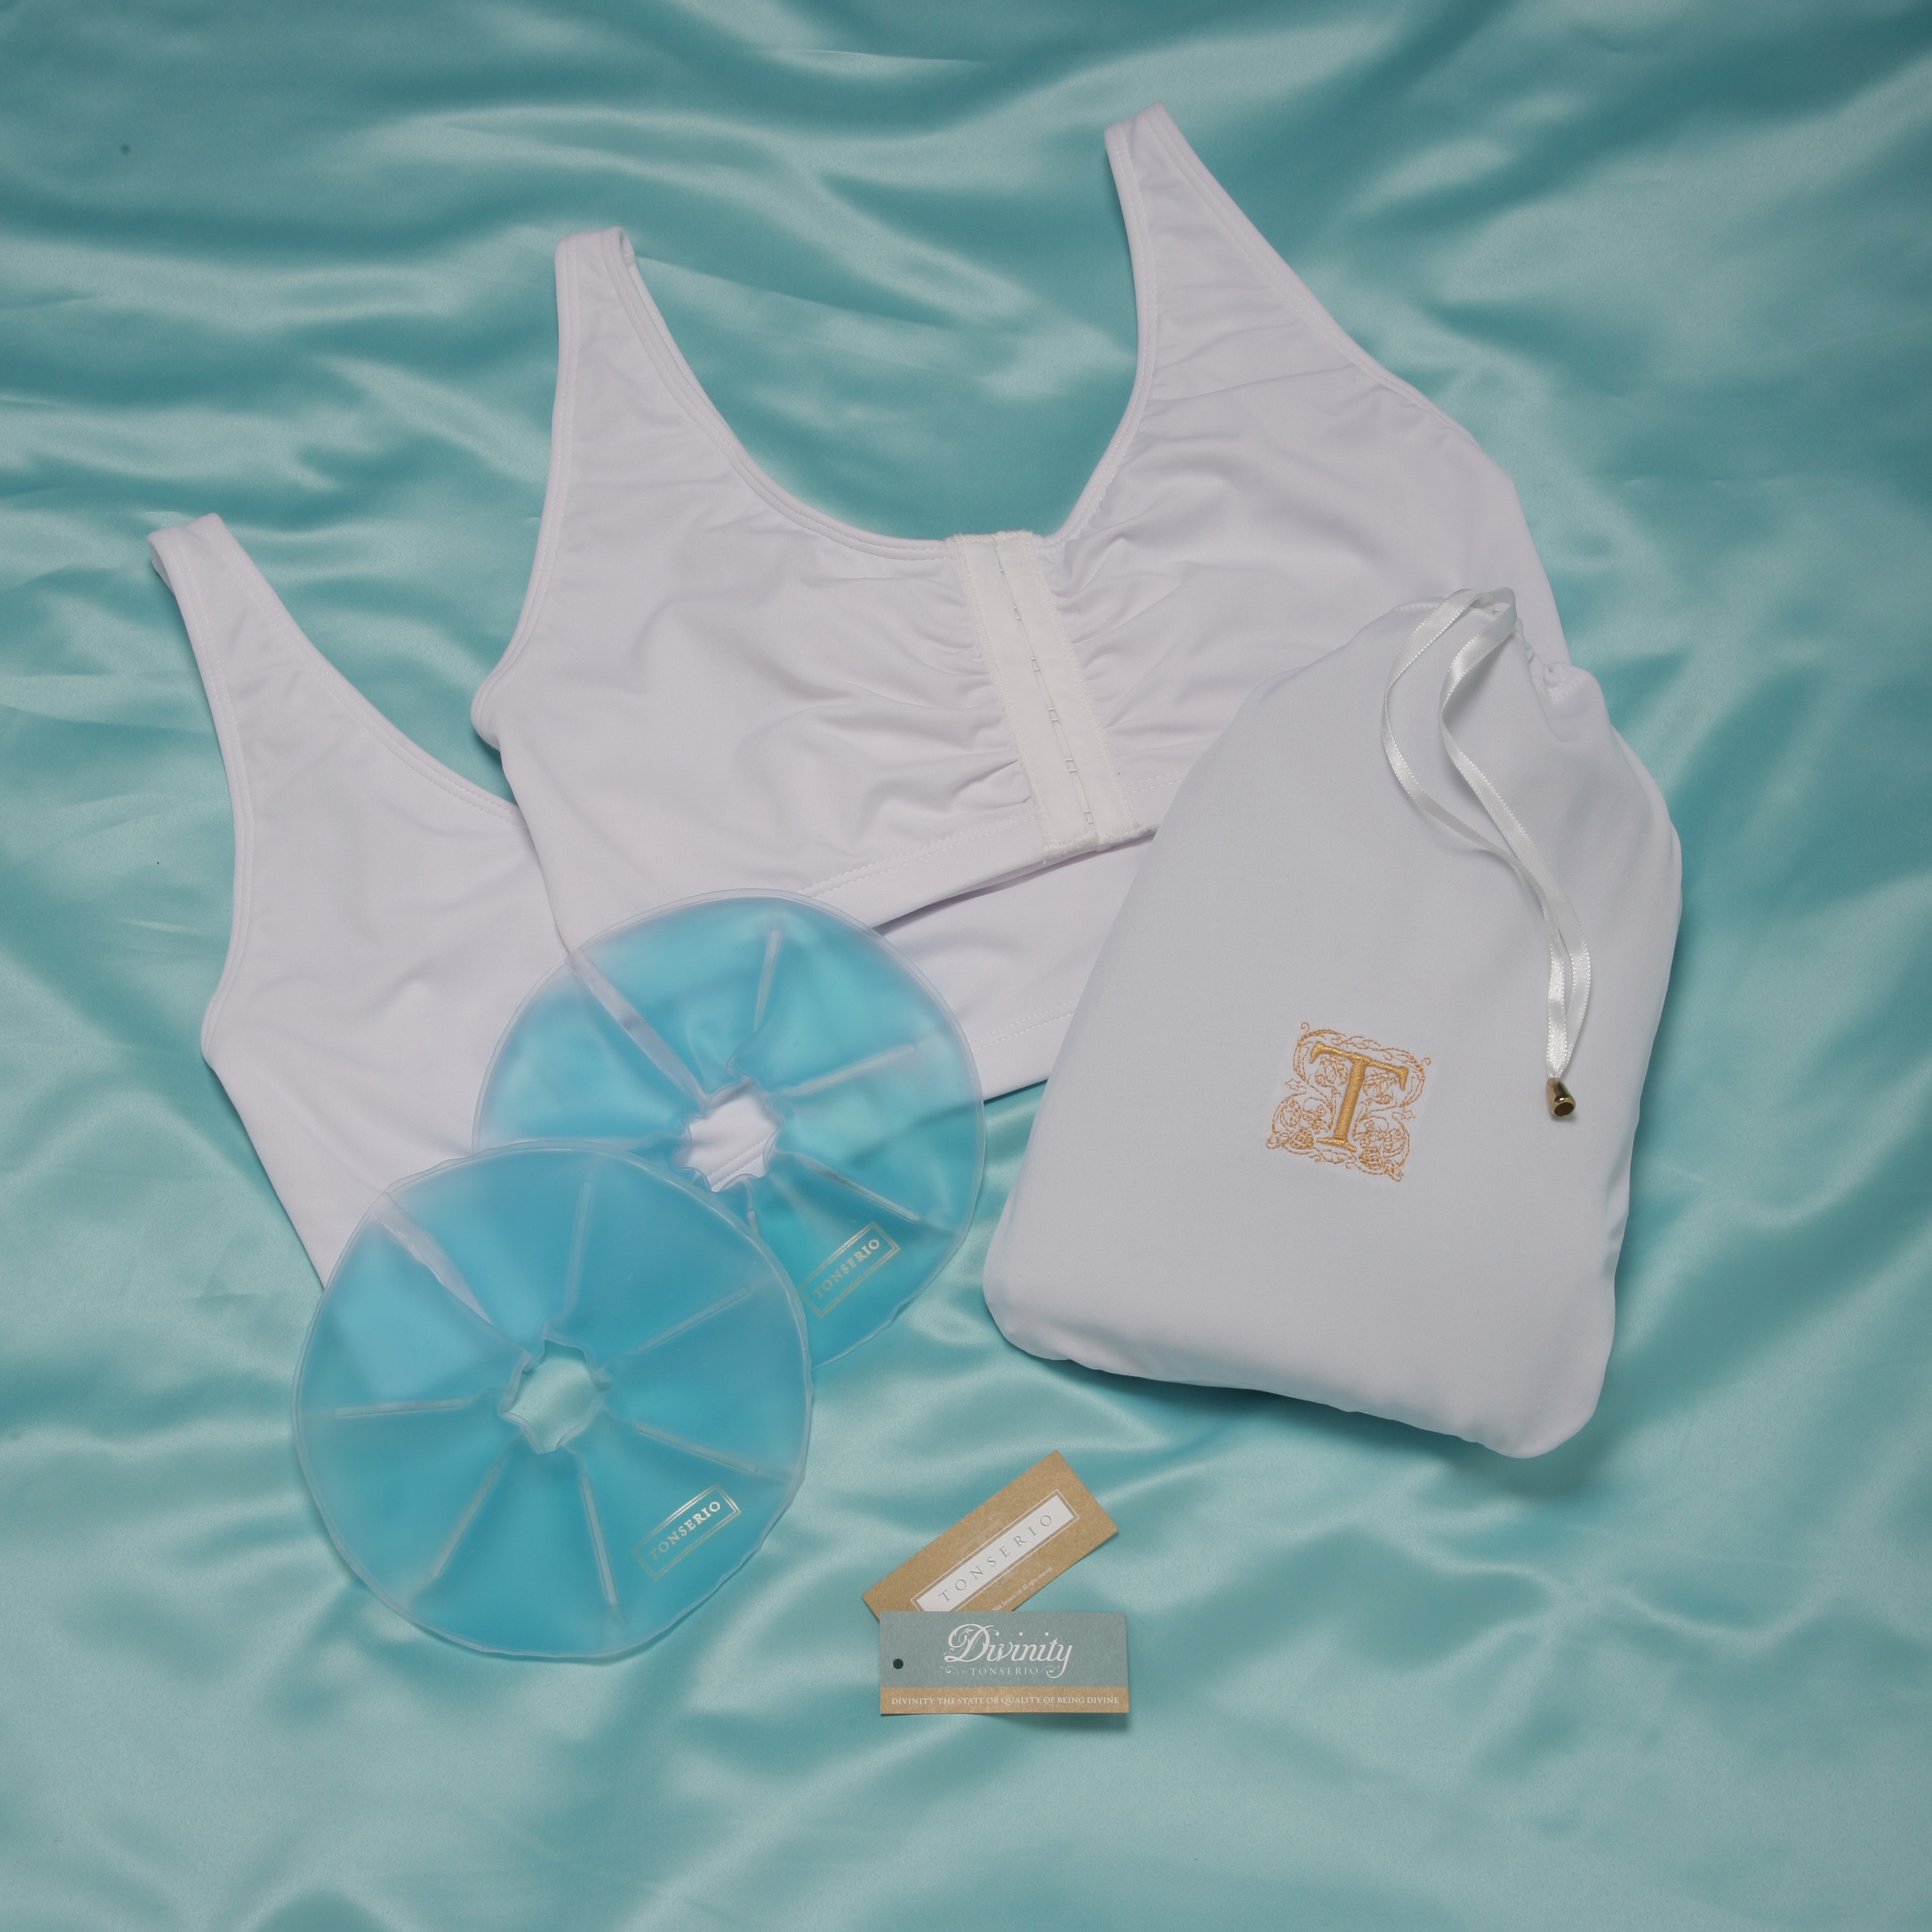 Tonserio Breast Surgery Care Kit (w/2 bras & compress)